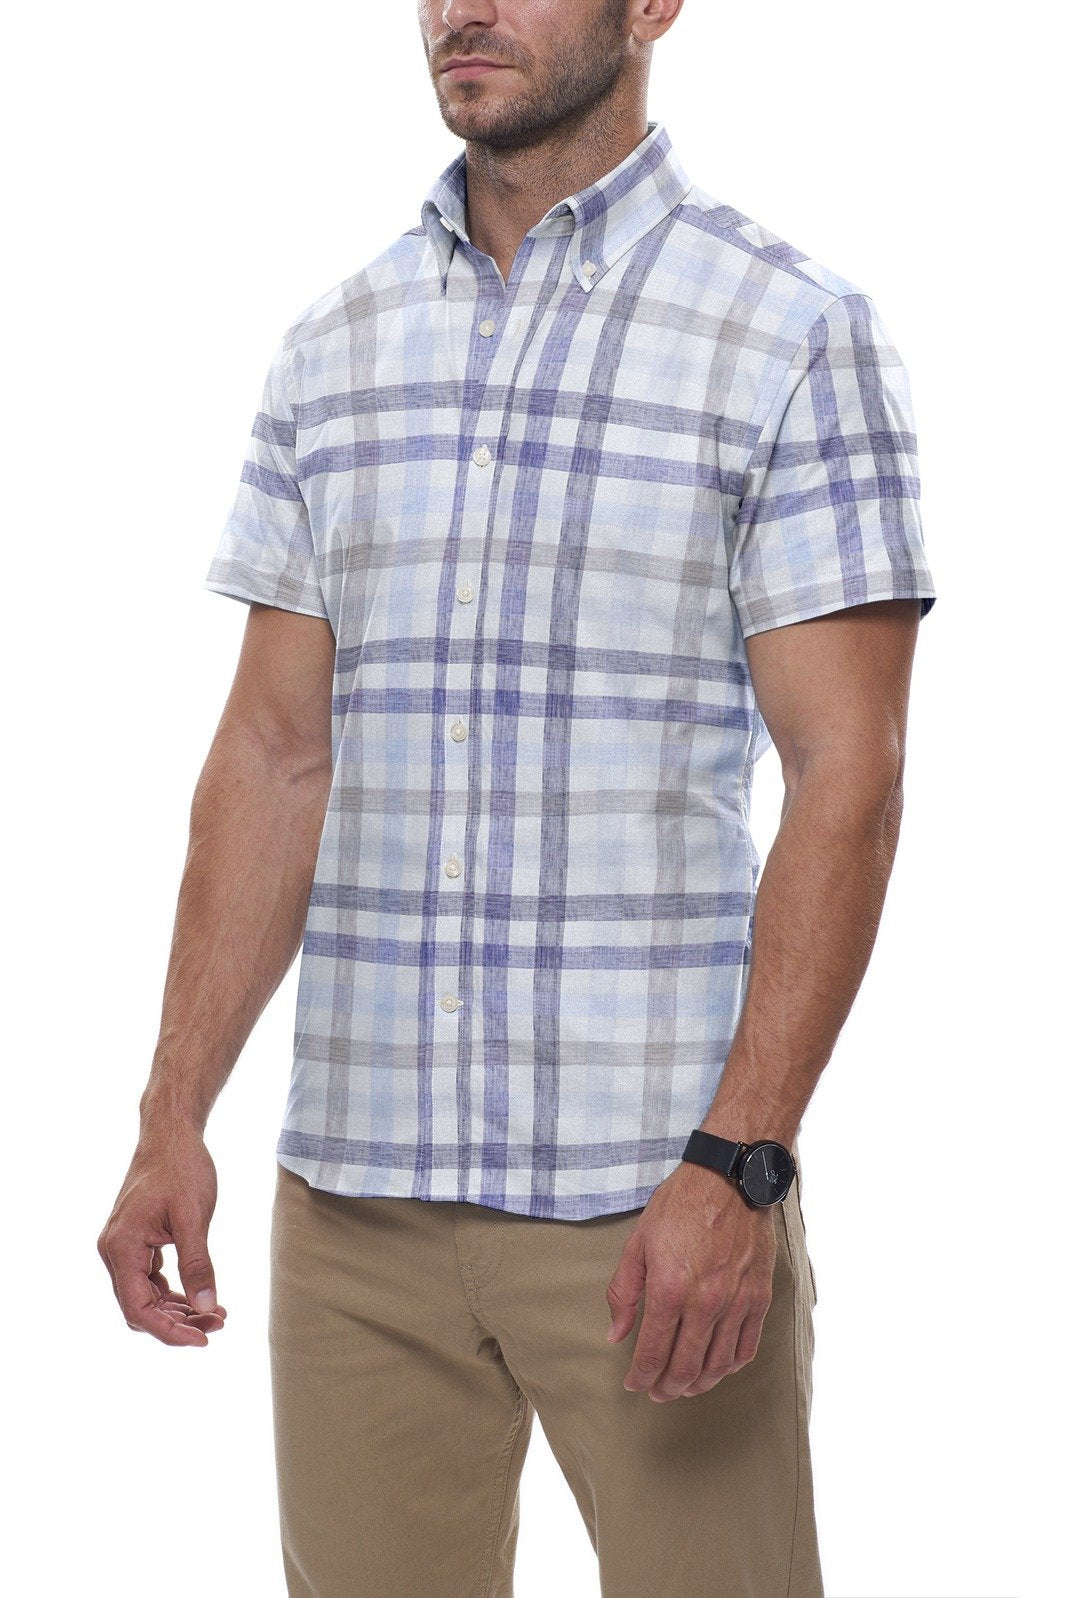 Blue and Beige Large Linen Check: Semi-Spread Collar, Short Sleeve